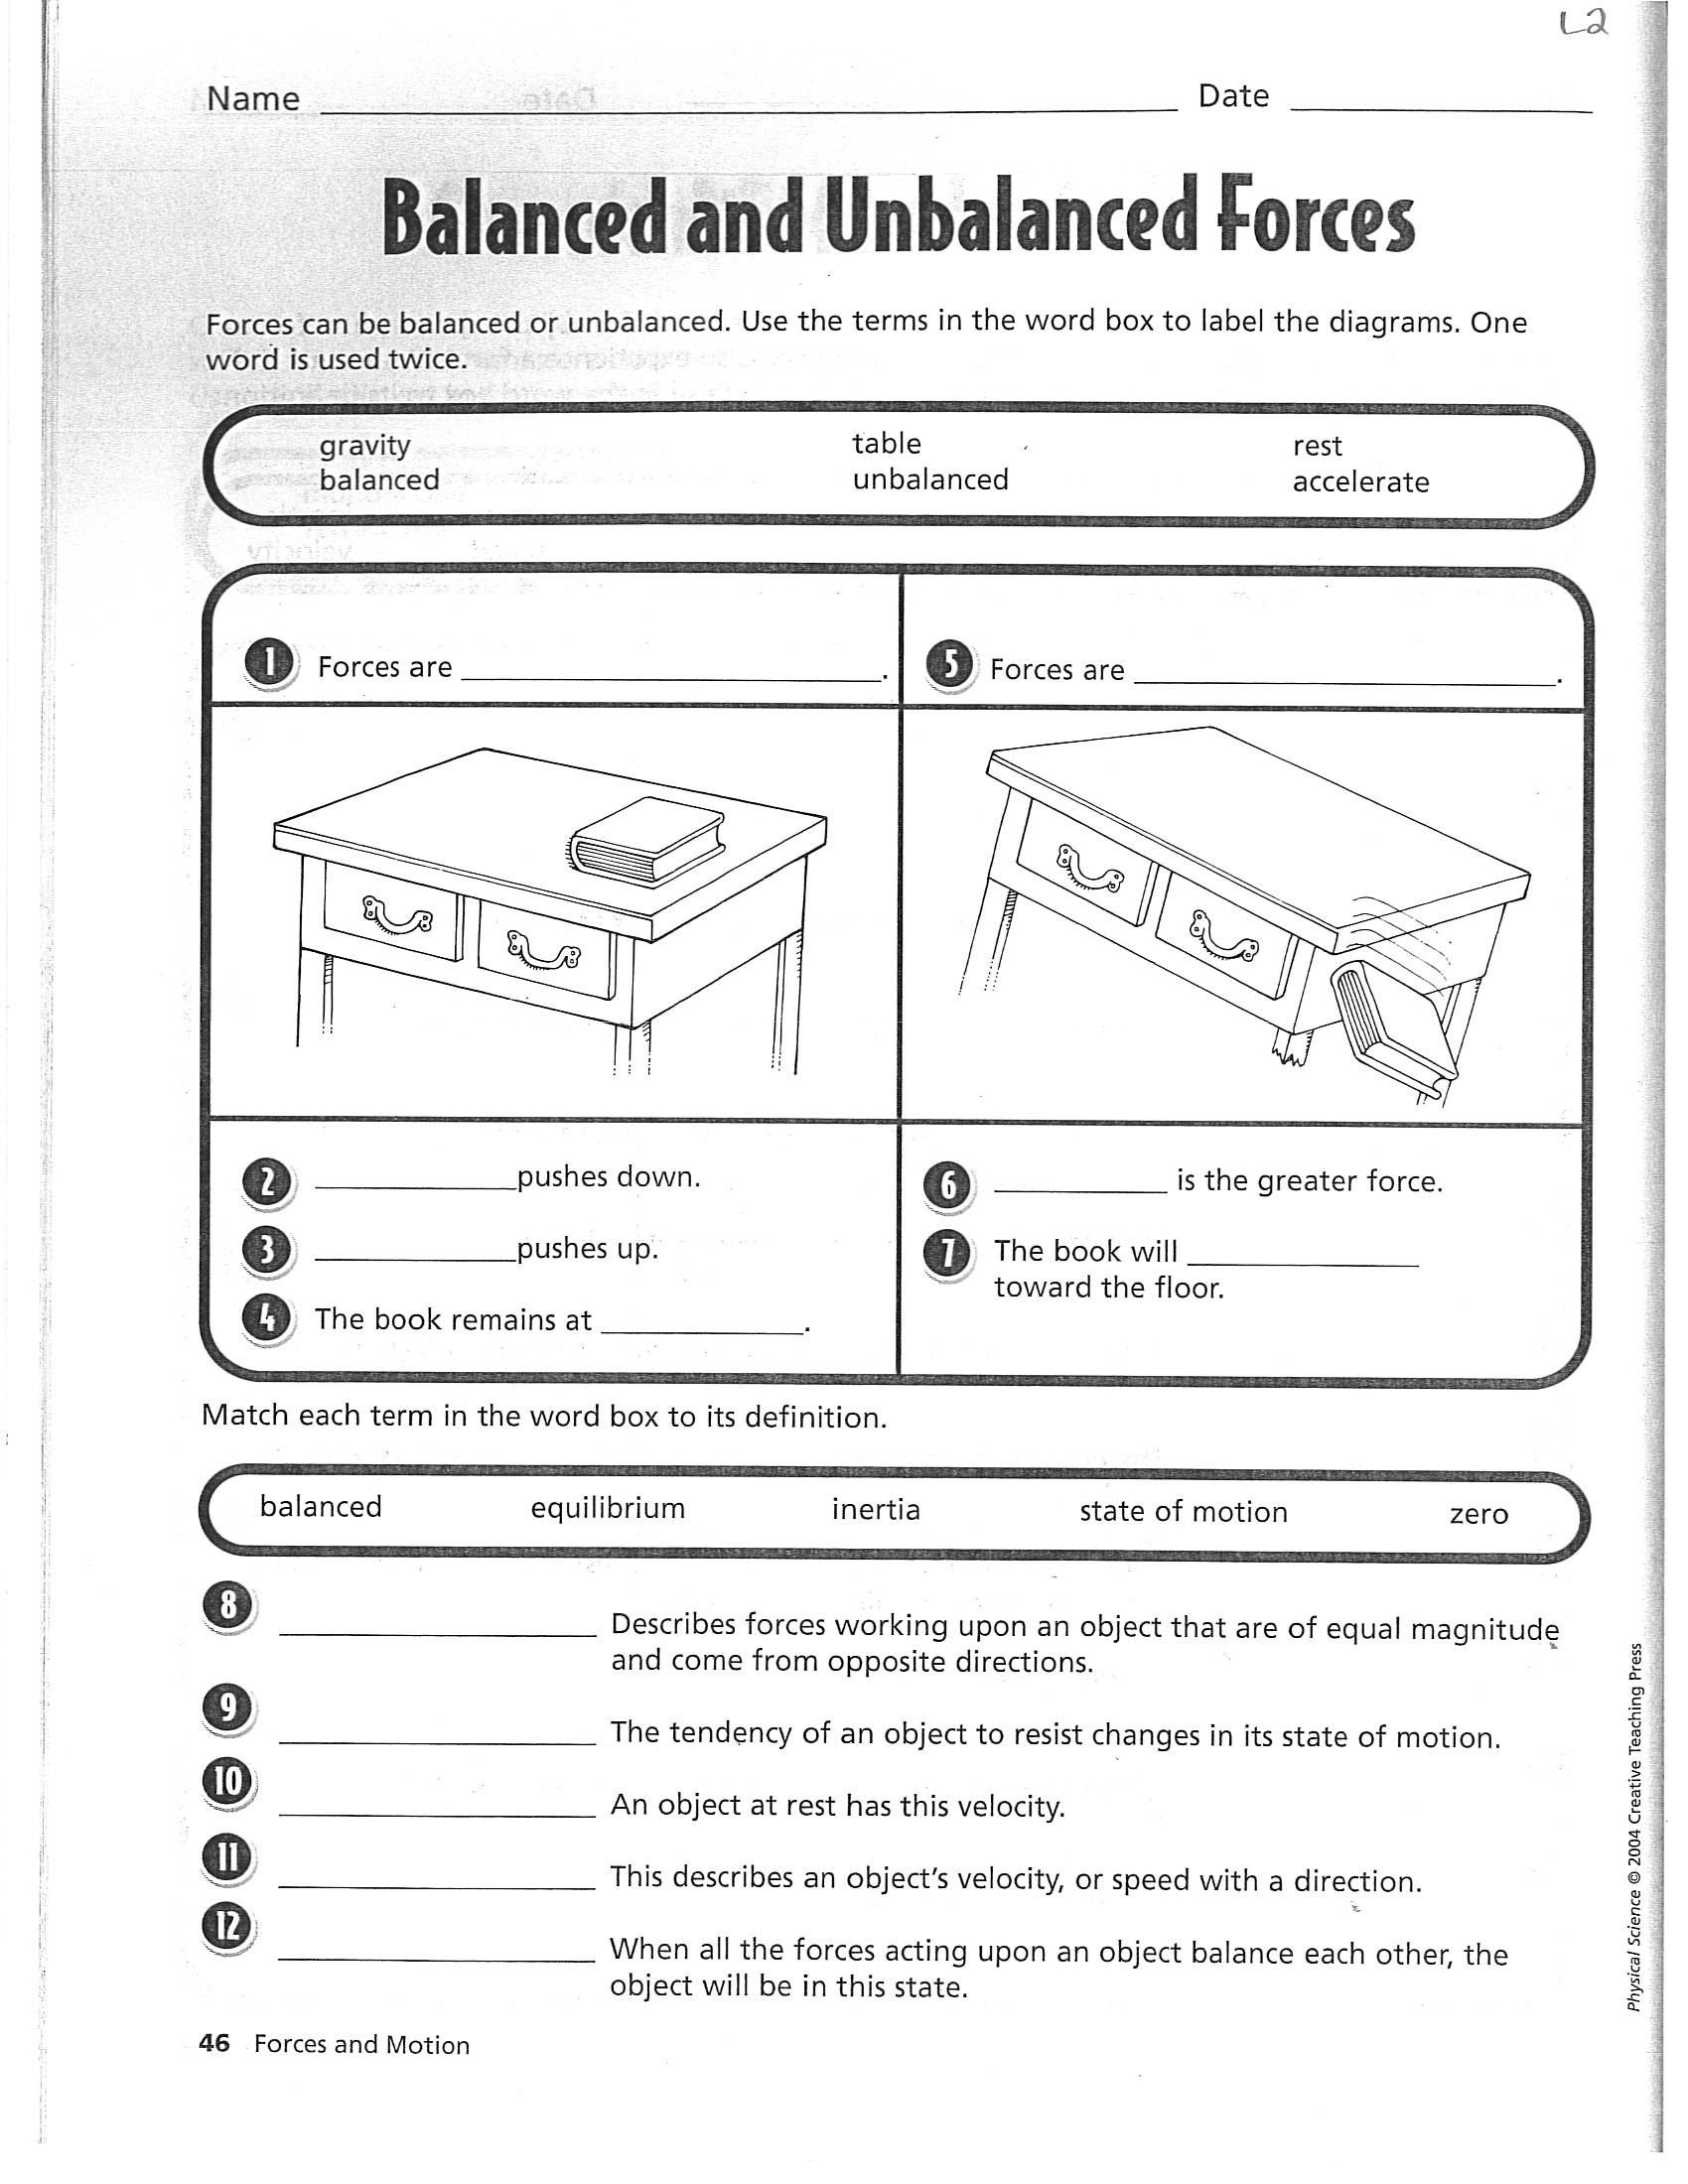 Forces and Motion Worksheet Term 4